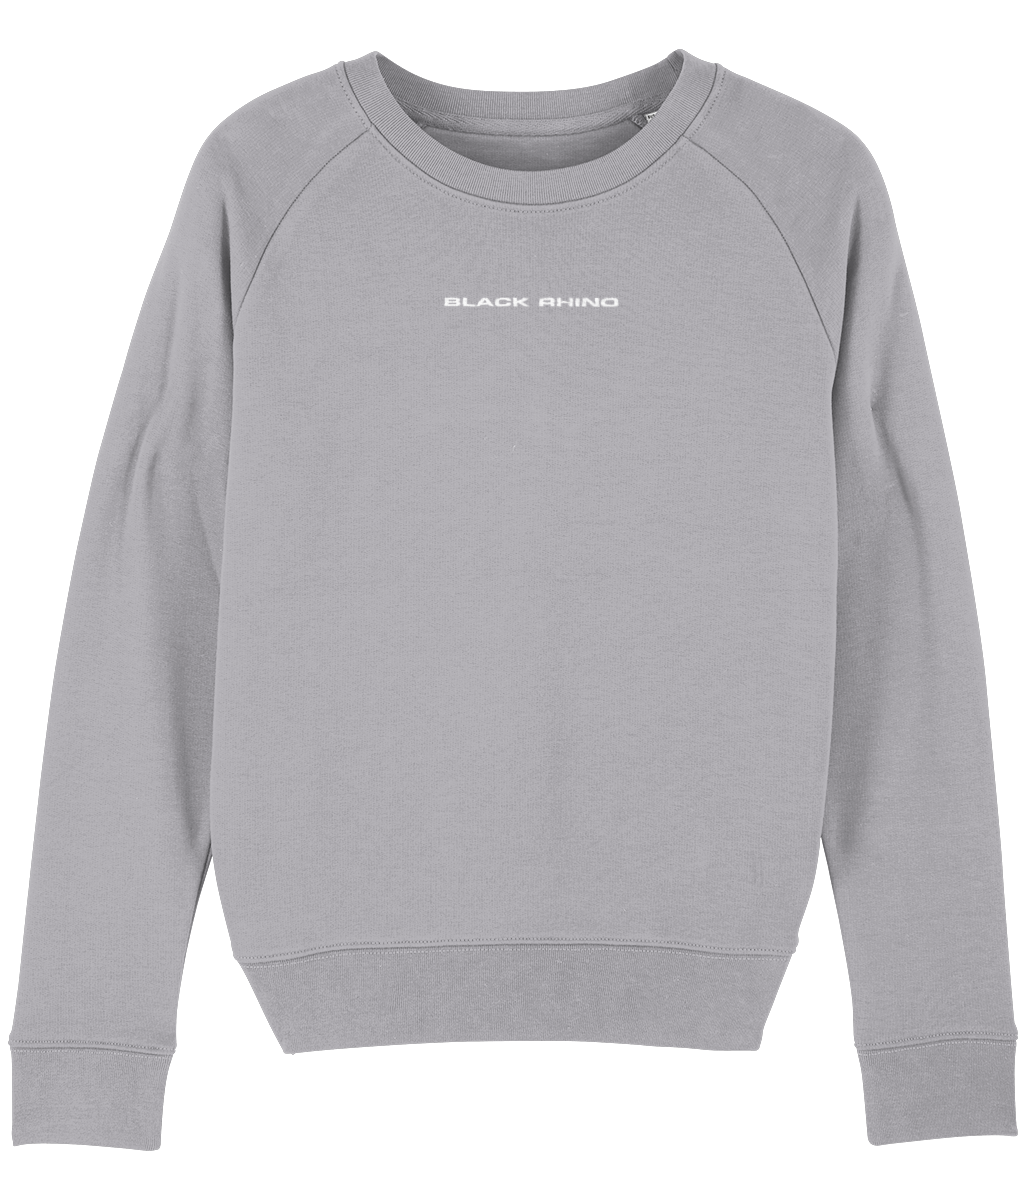 Mid Heather Grey Classic Crew Neck Sweatshirt